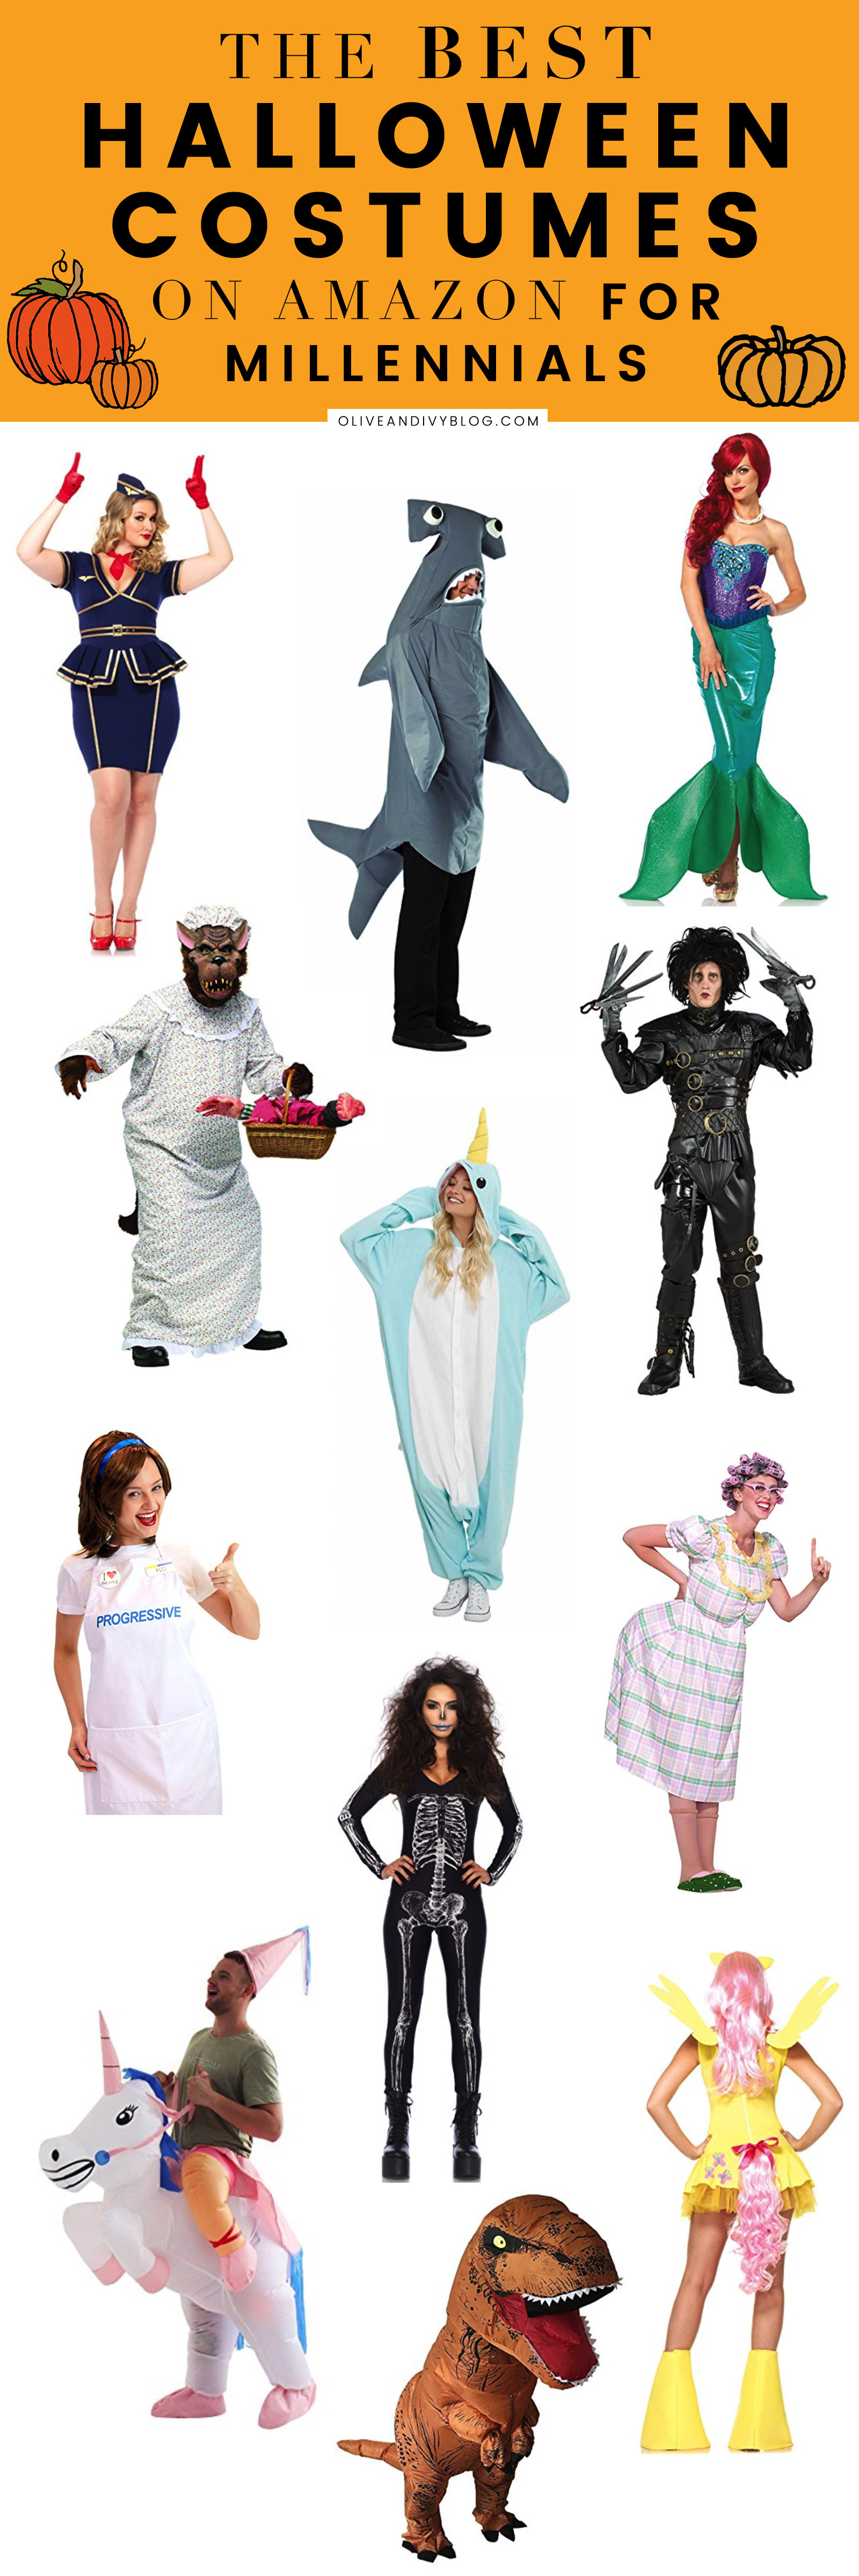 The Best Halloween Costumes on Amazon (For Millennials